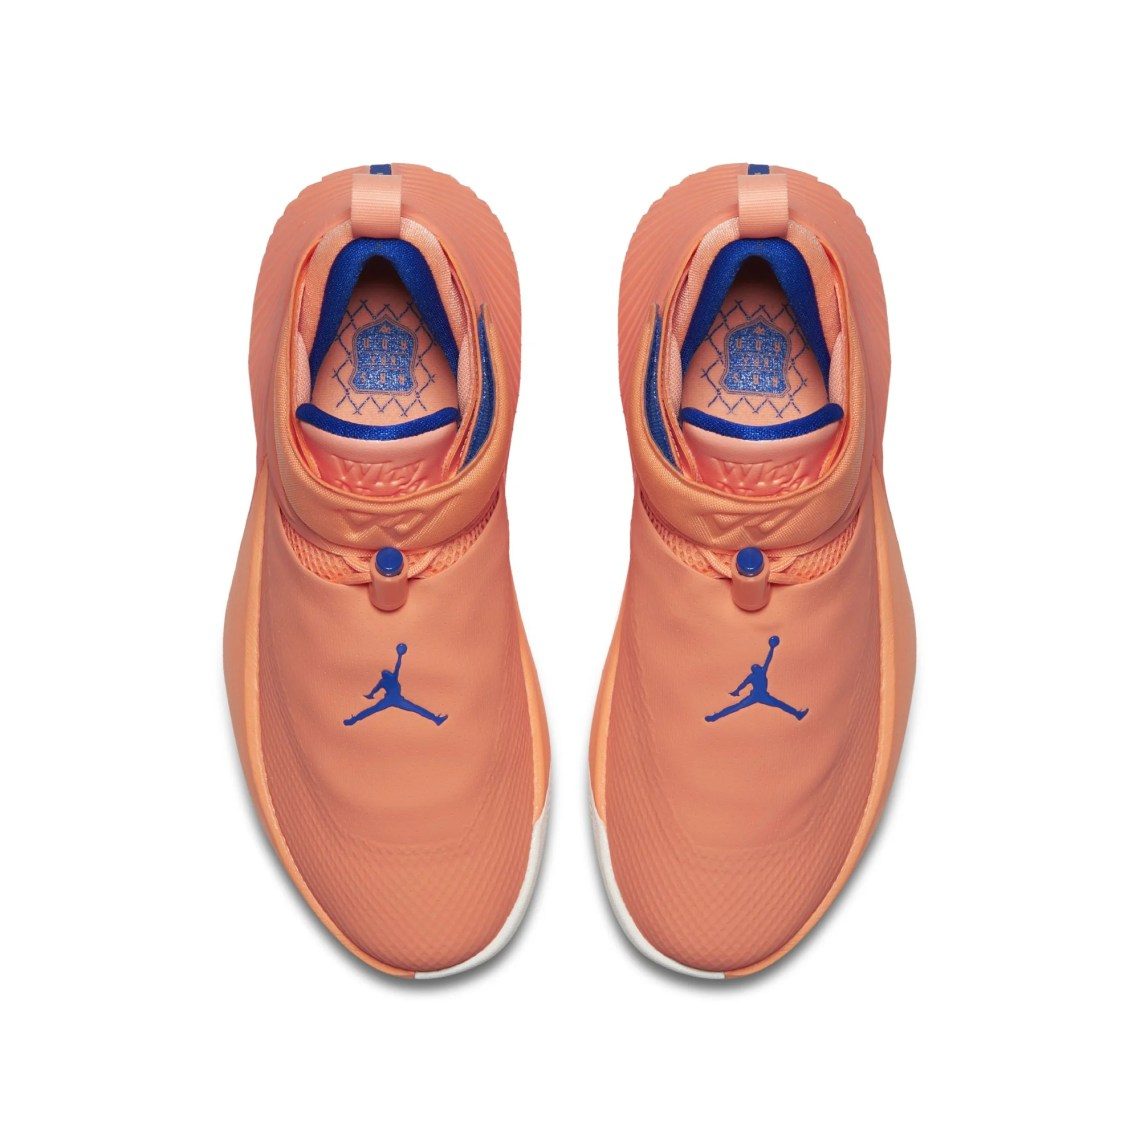 0b47d583643fc3 Russell Westbrook s Jordan Fly Next Appears in OKC Colors